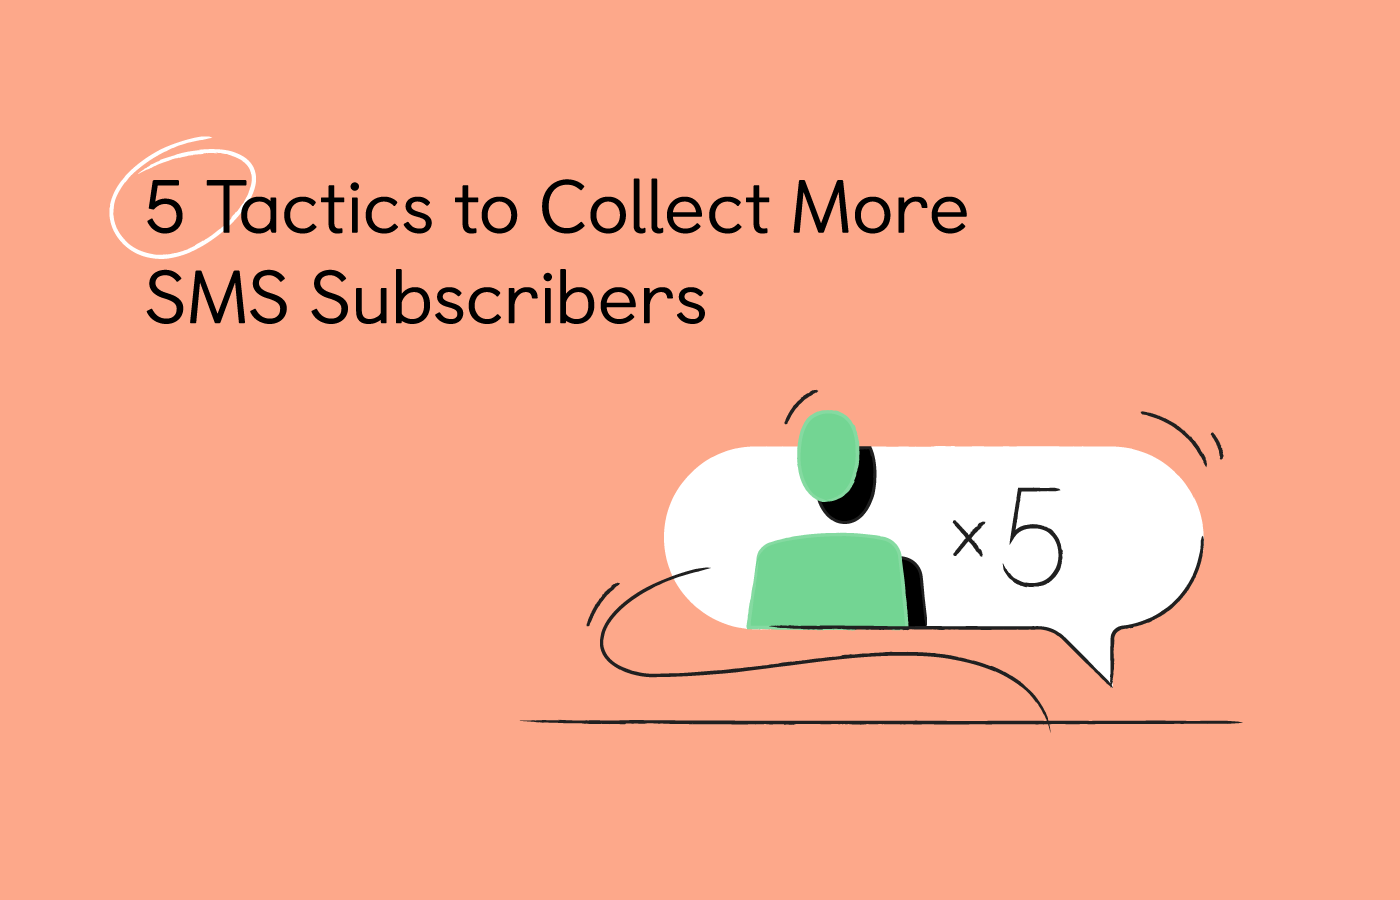 5 Tactics to Collect More SMS Subscribers